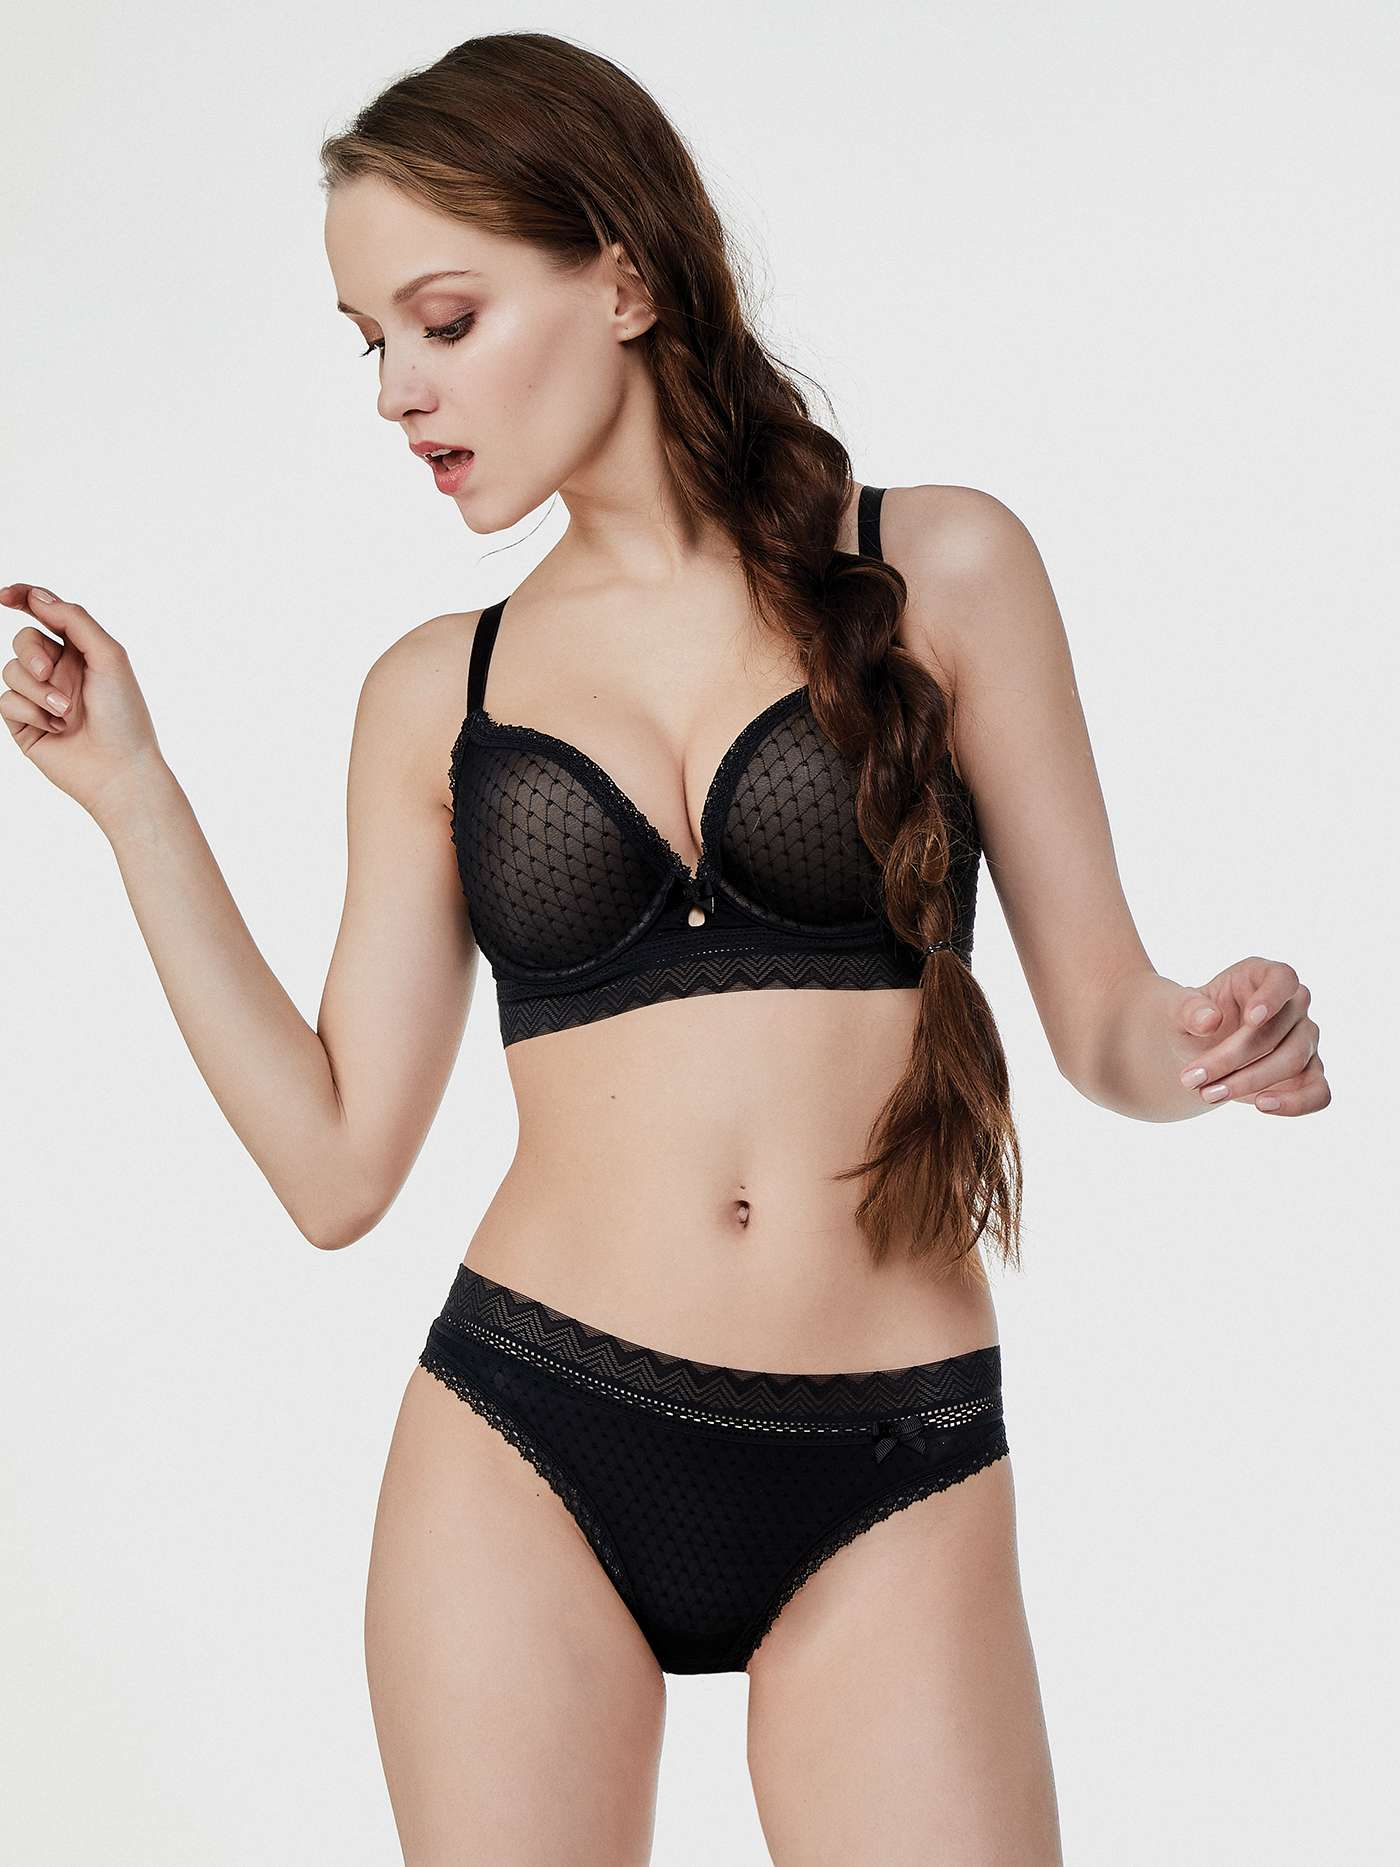 Бюстгальтер push-up Vendetta MANHATTAN Черный BU3325PU